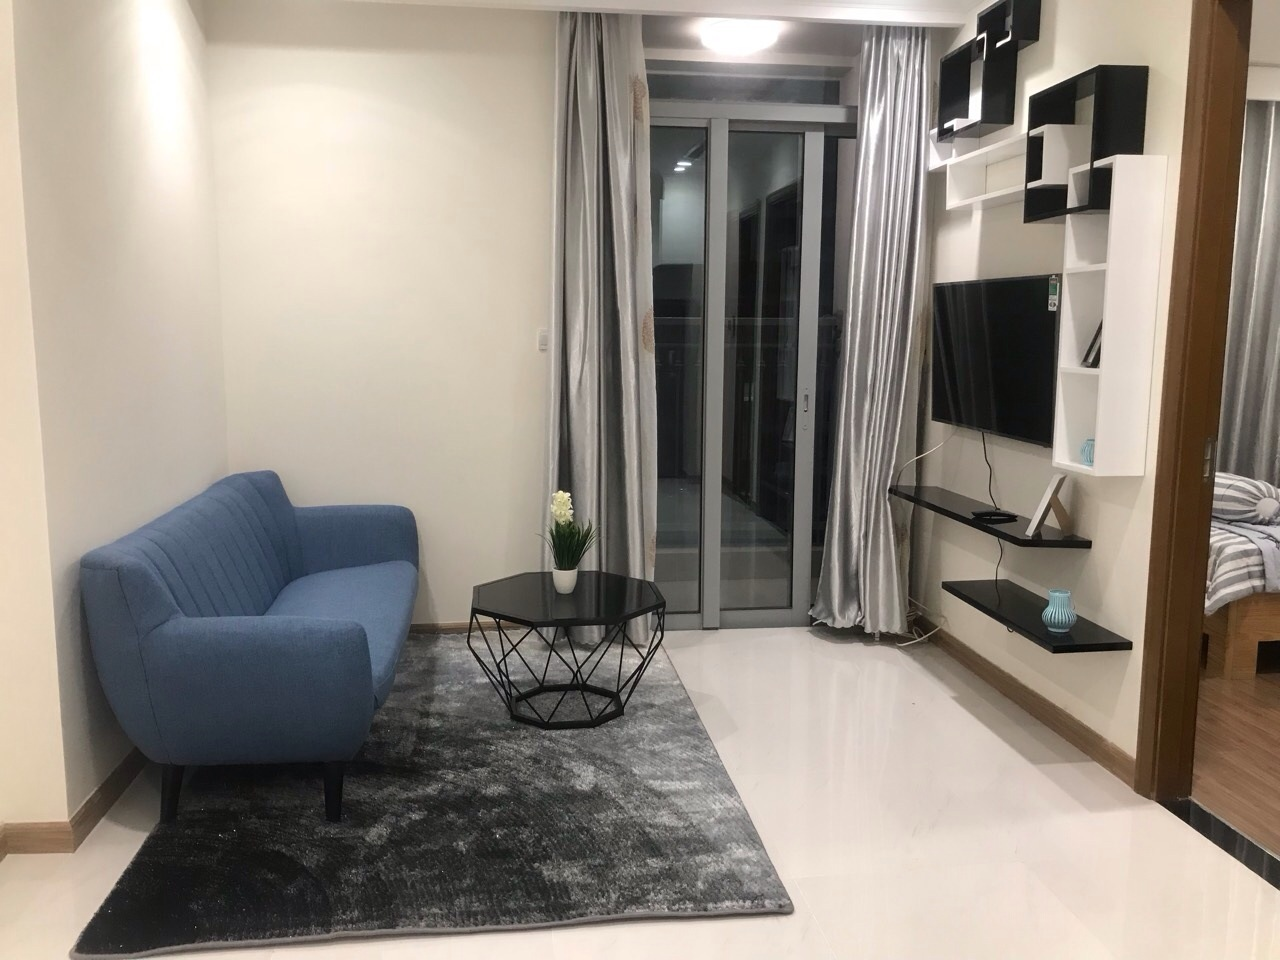 apartment for rent in Vinhomes Central Park Binh Thanh  District HCM BT105L3520 (2)